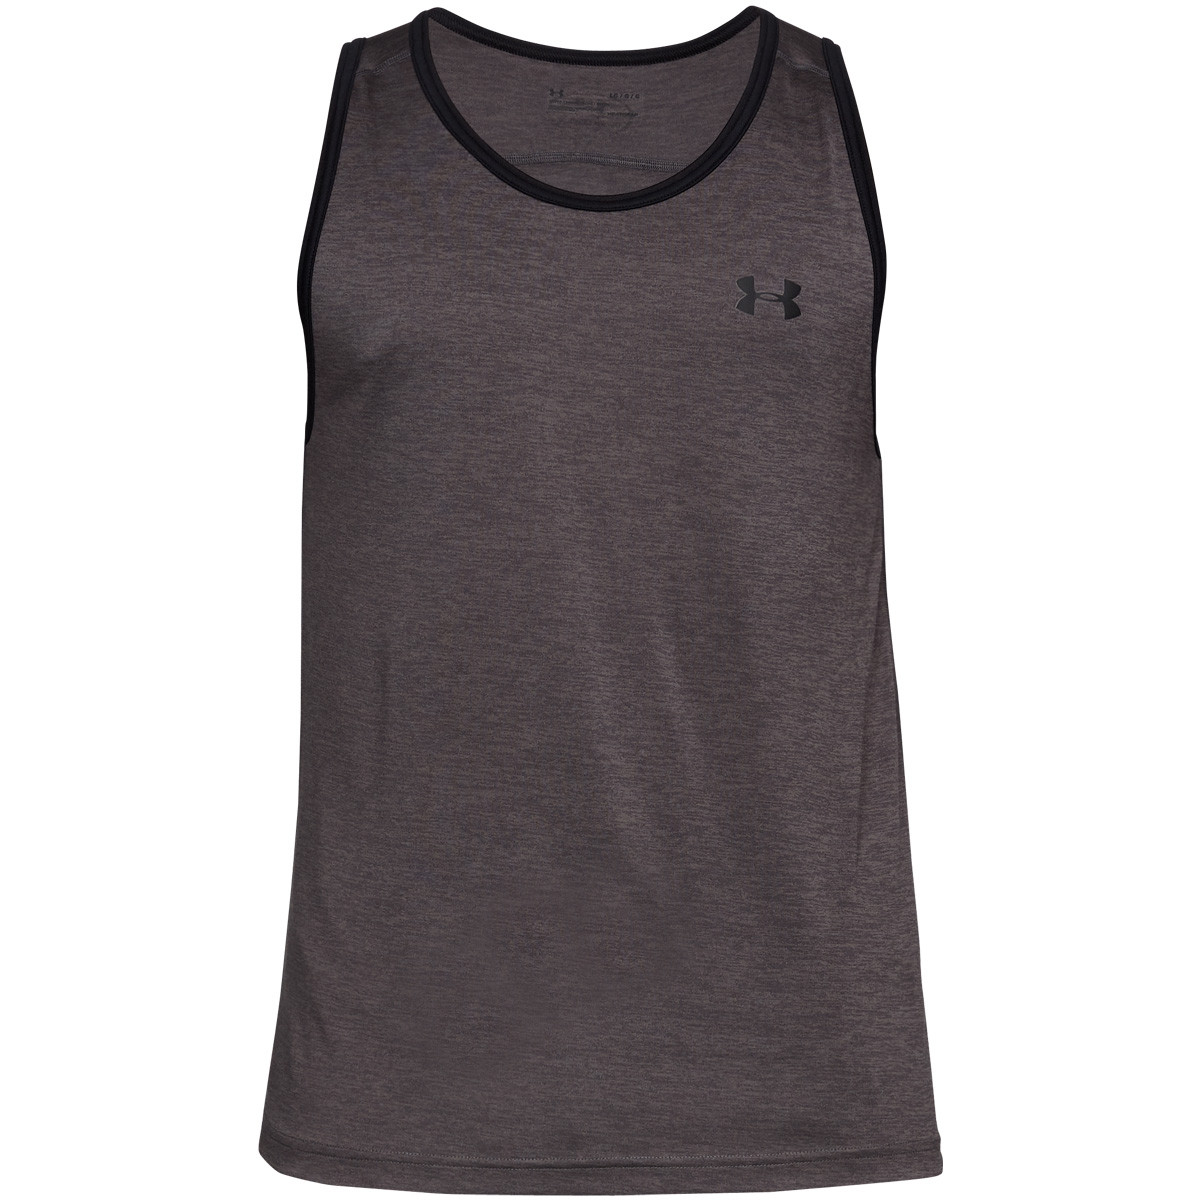 62874c42 Under Armour Mens HeatGear UA Tech Tank Top